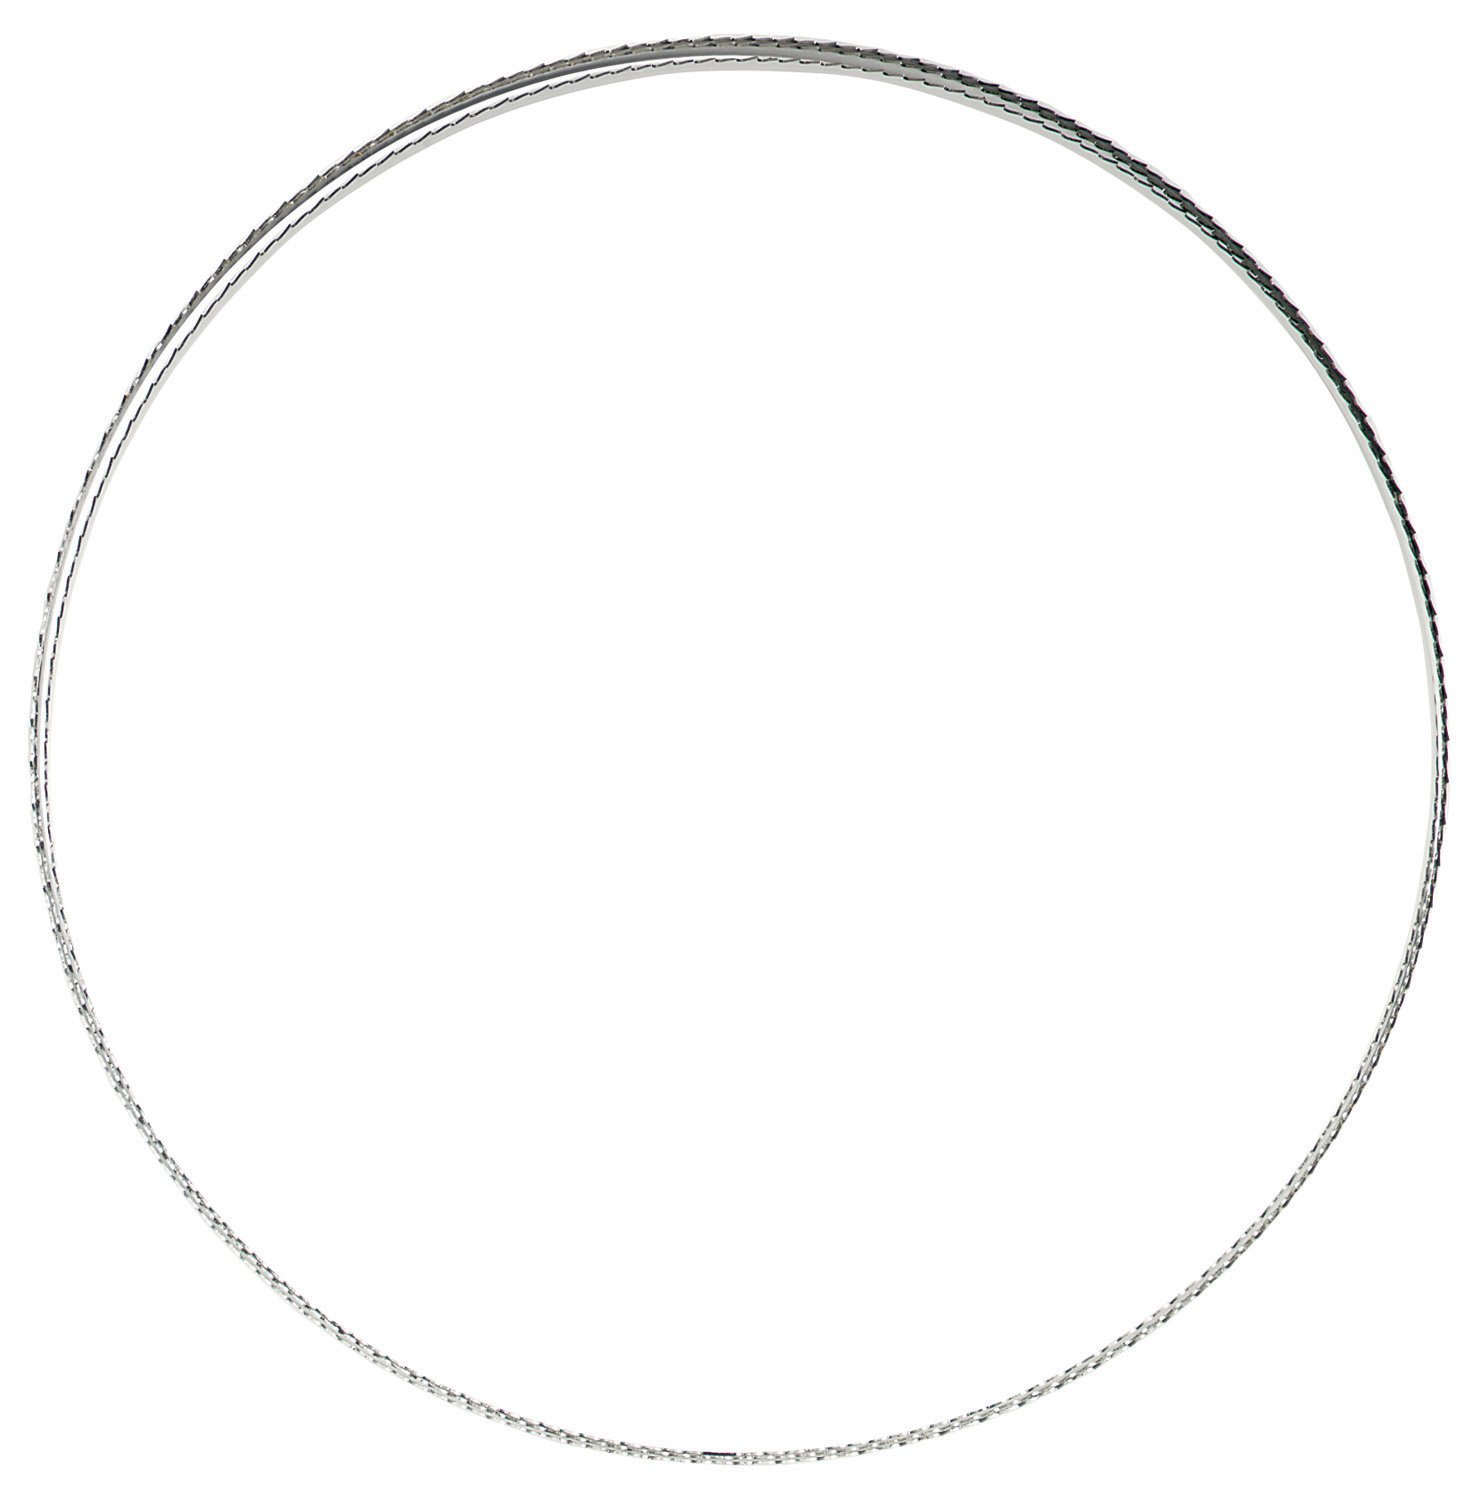 DELTA 28-963 14-Inch Band Saw Blade 3/16-Inch by 93-1/2-Inch 6 TPI